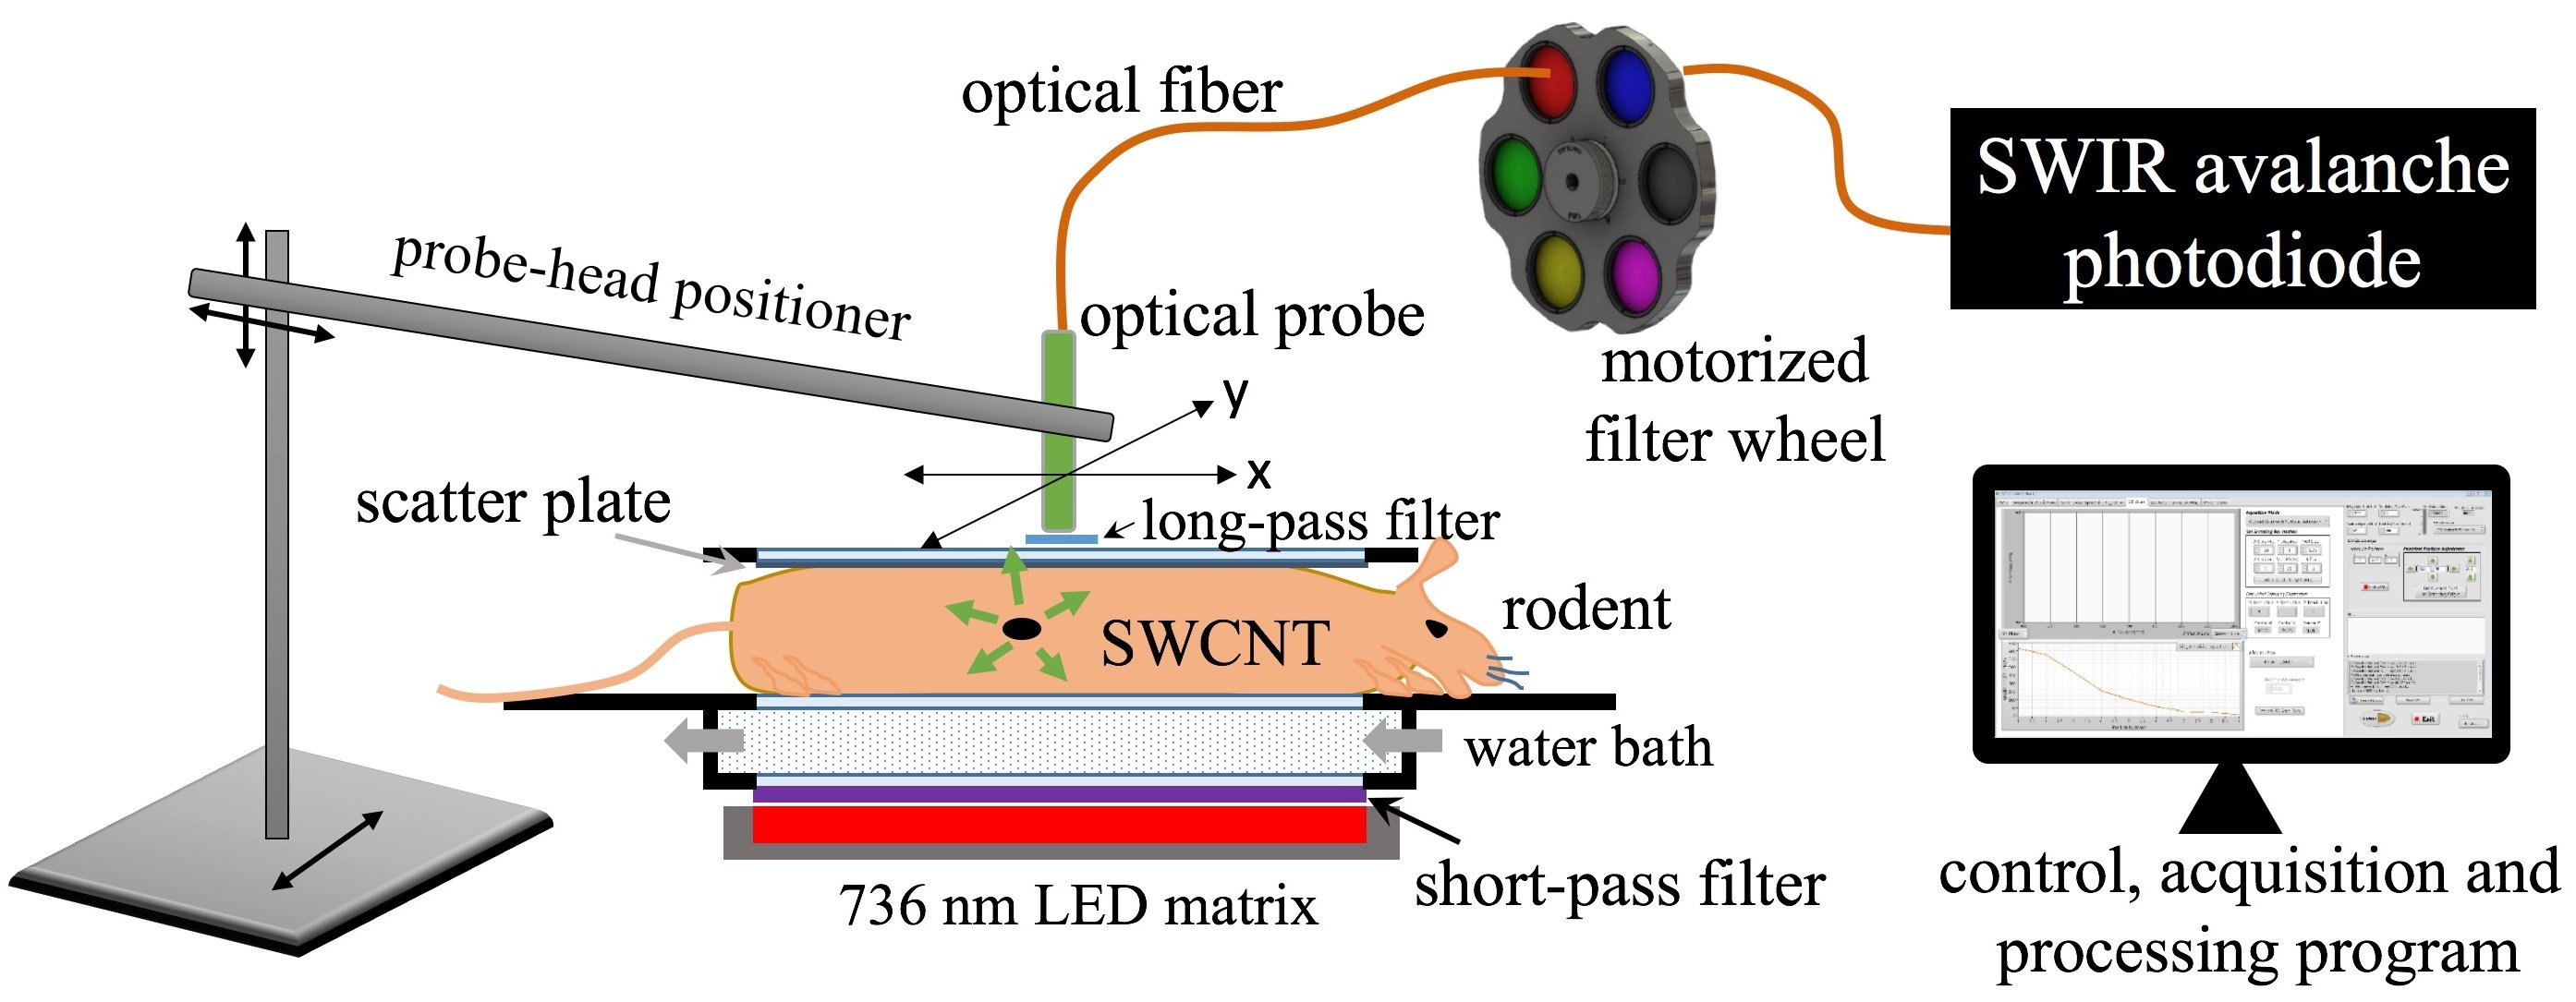 Researchers Use Fluorescent Carbon Nanotube Probes To Detect Ovarian Fiber Optic Probe Diagram Rice University And Md Anderson Have Developed A Technique That Uses Based Locate Specific Tumors In The Body